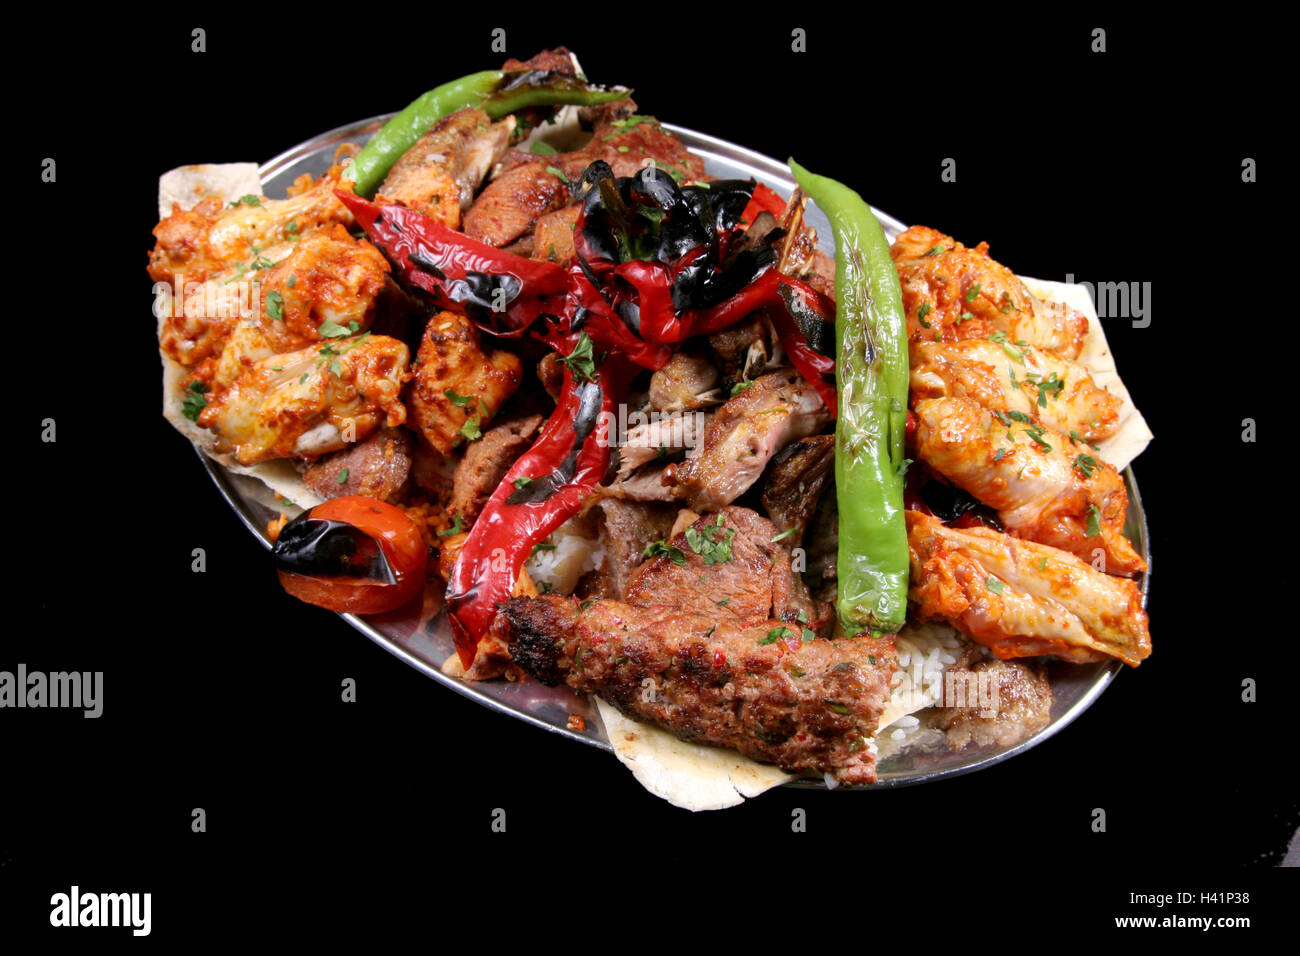 Chicken Kebab Platter High Resolution Stock Photography And Images Alamy